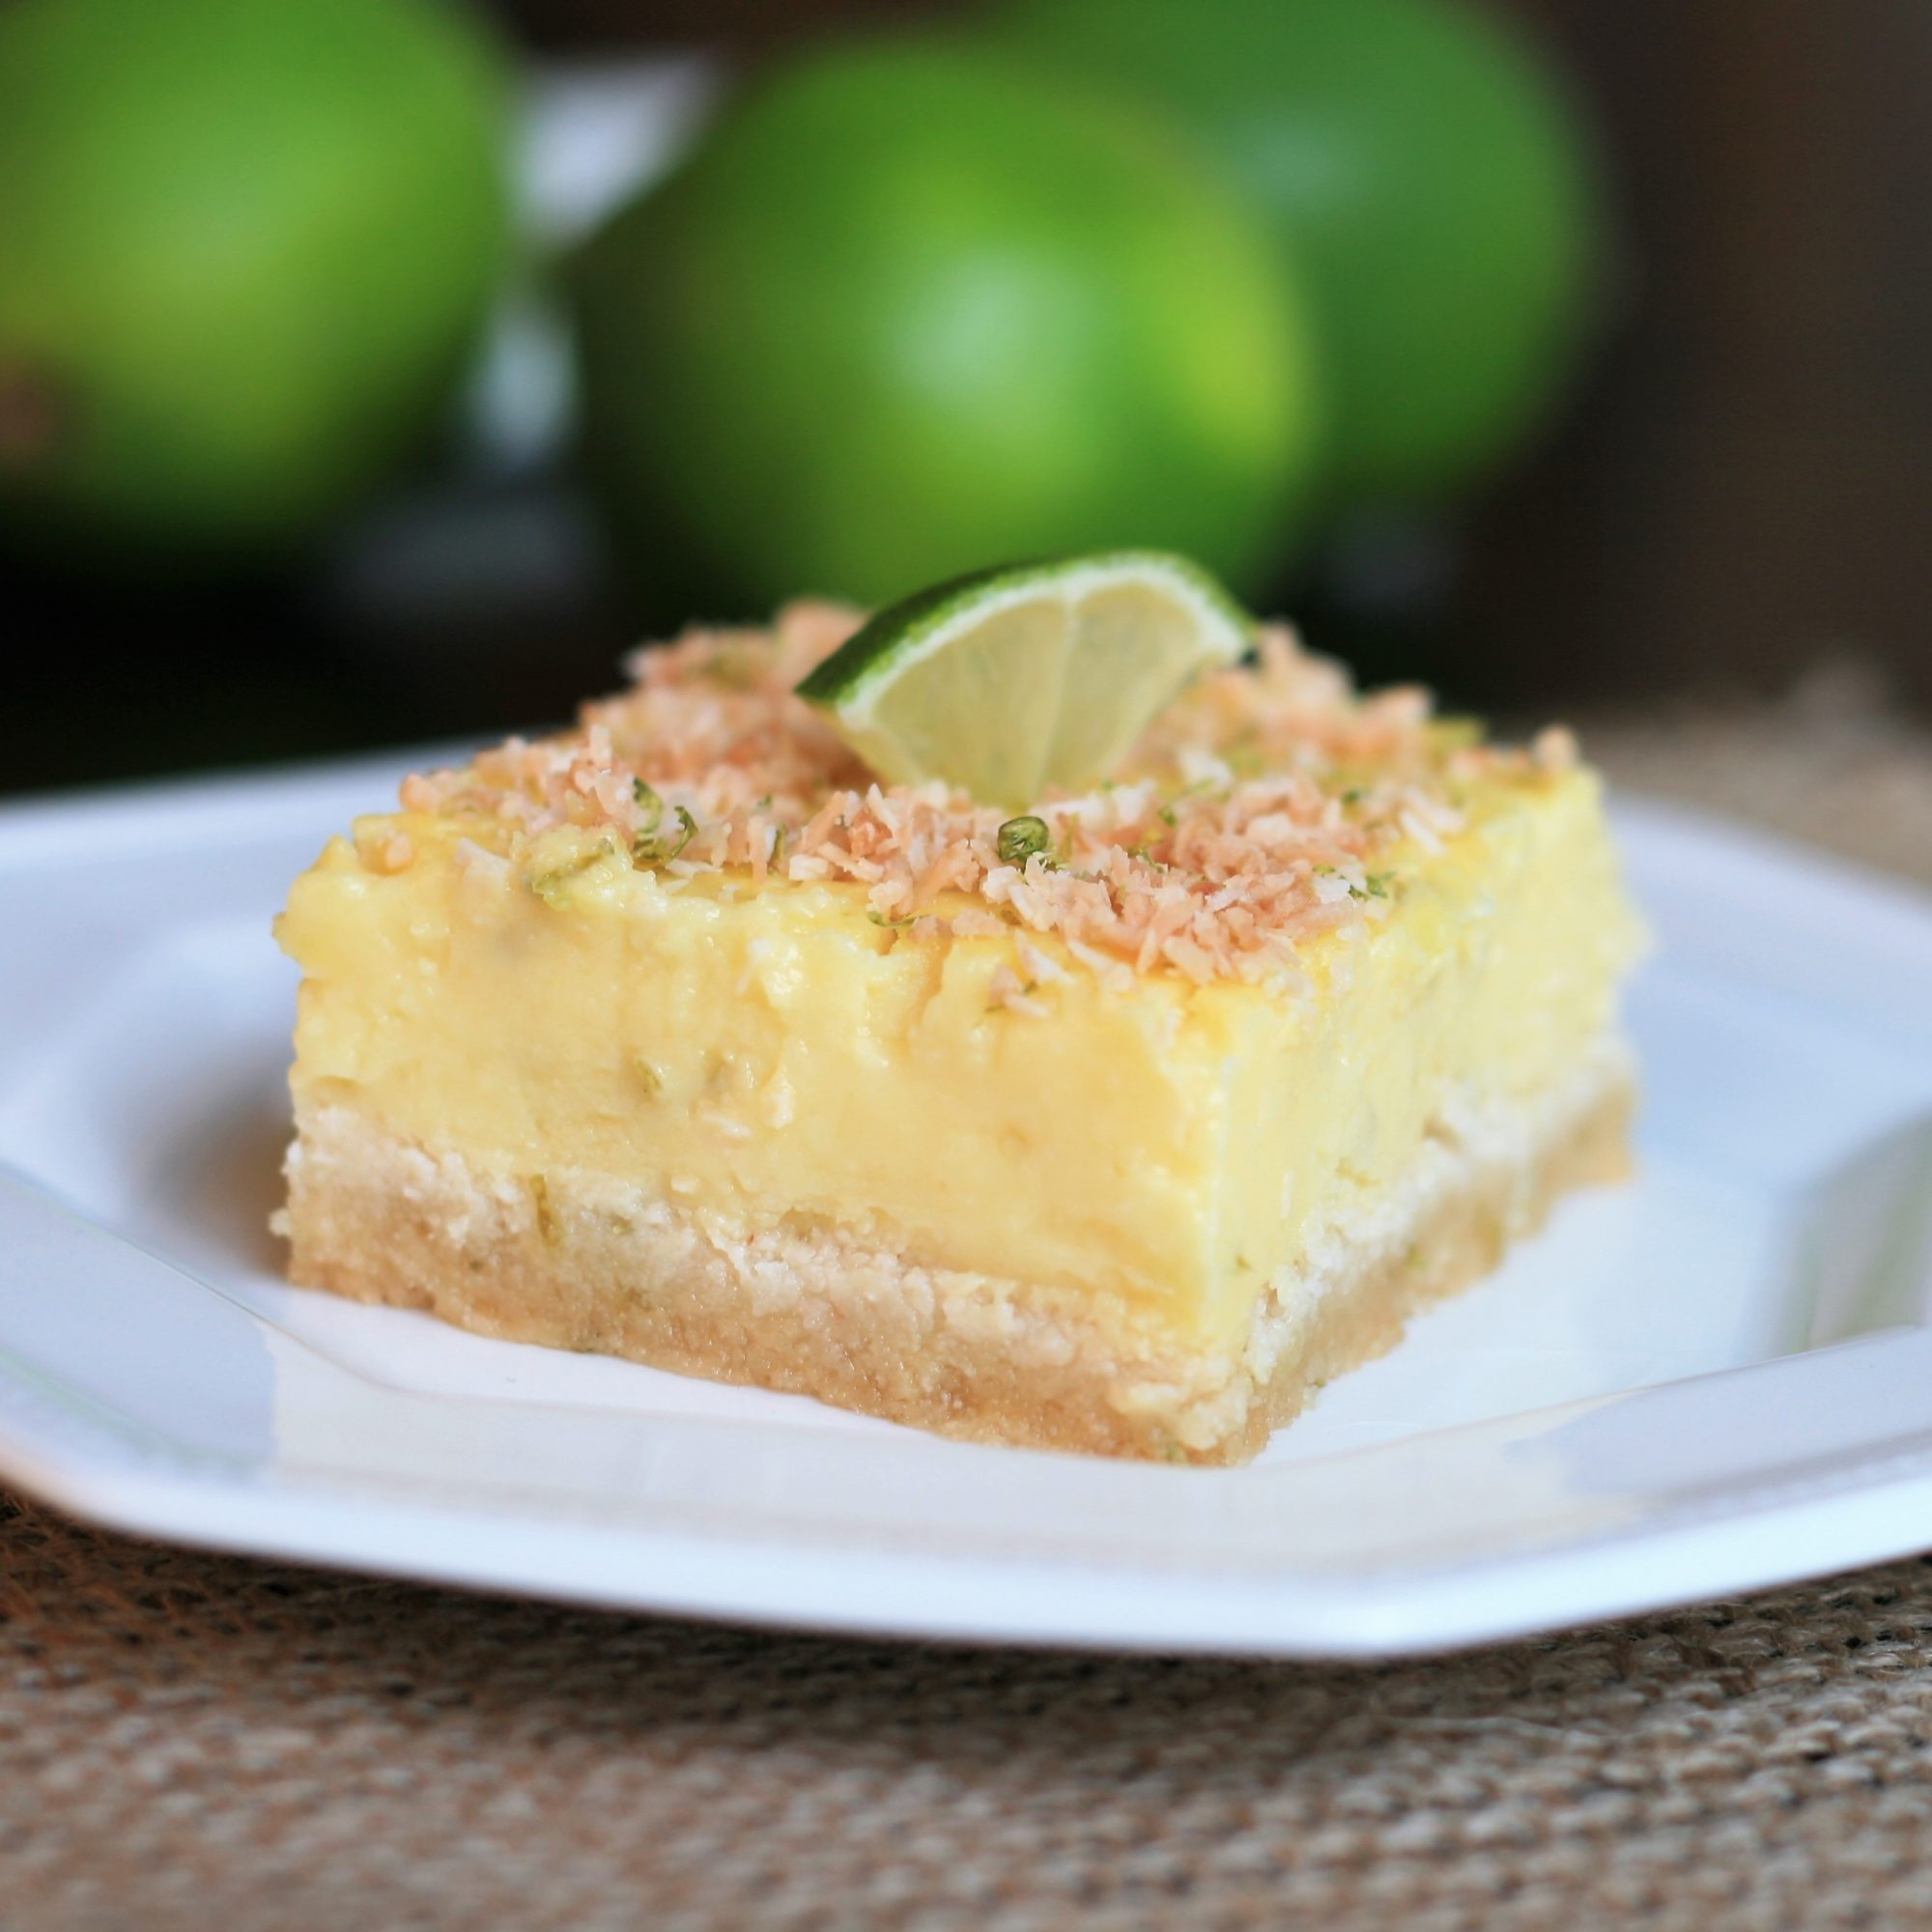 If you prefer sour to sweet, tangy Keto Coconut Lime Bars bars will hit the spot.